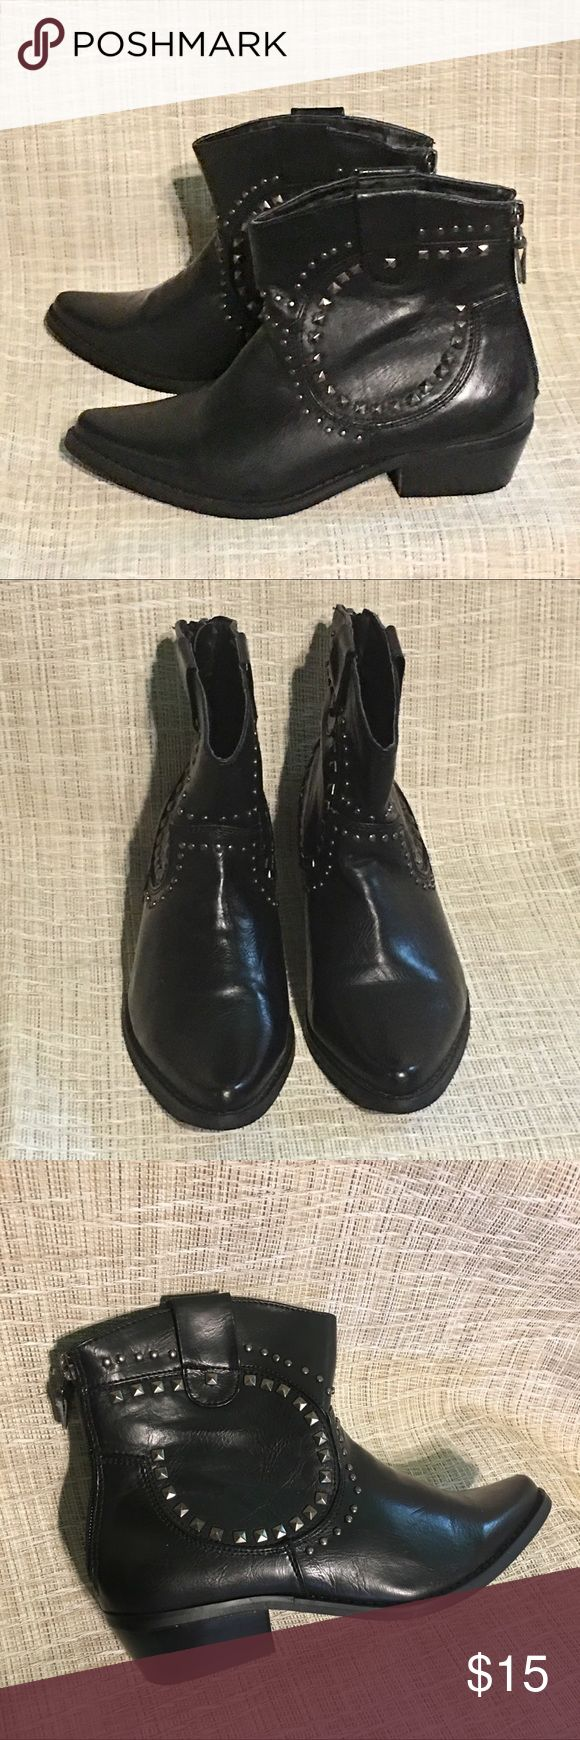 Electric Karma Ladies Black Zip Ankle Boots, Sz 6 Black zip ankle boots with metal studs. Electric Karma Size 6 Ladies. All Man-Made materials. Electric Karma Shoes Ankle Boots & Booties